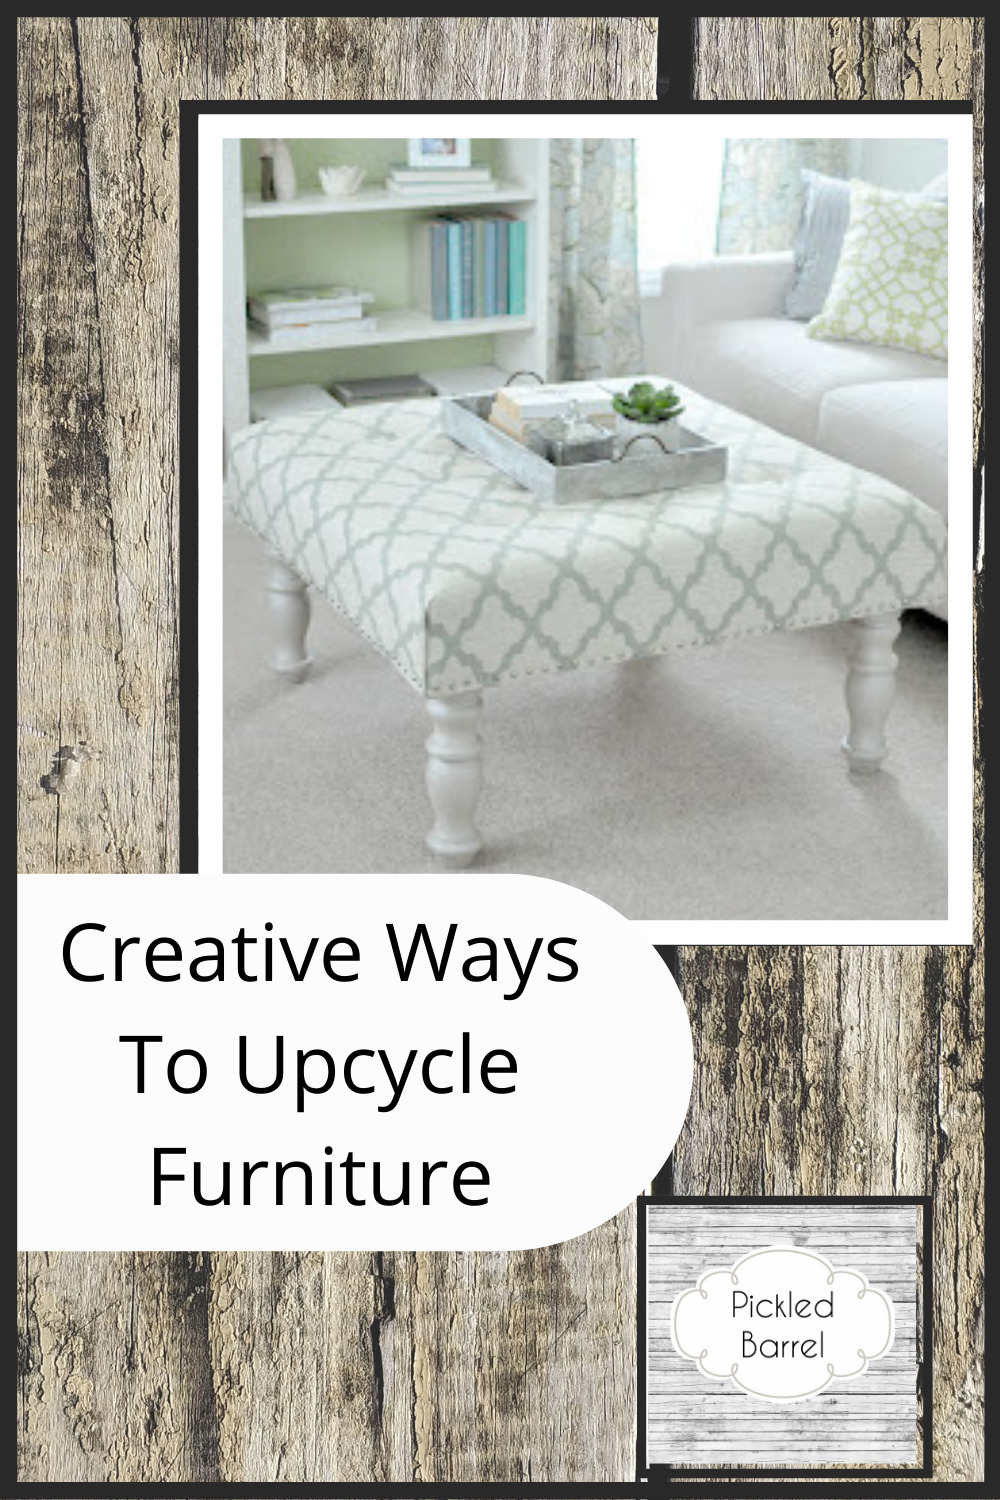 Pickledbarrel.com has creative, modern ideas with a rustic charm. Check out tons of DIY and decor ideas perfect for a modern farmhouse home. Don't let your old furniture go to waste with these clever upcycling ideas.